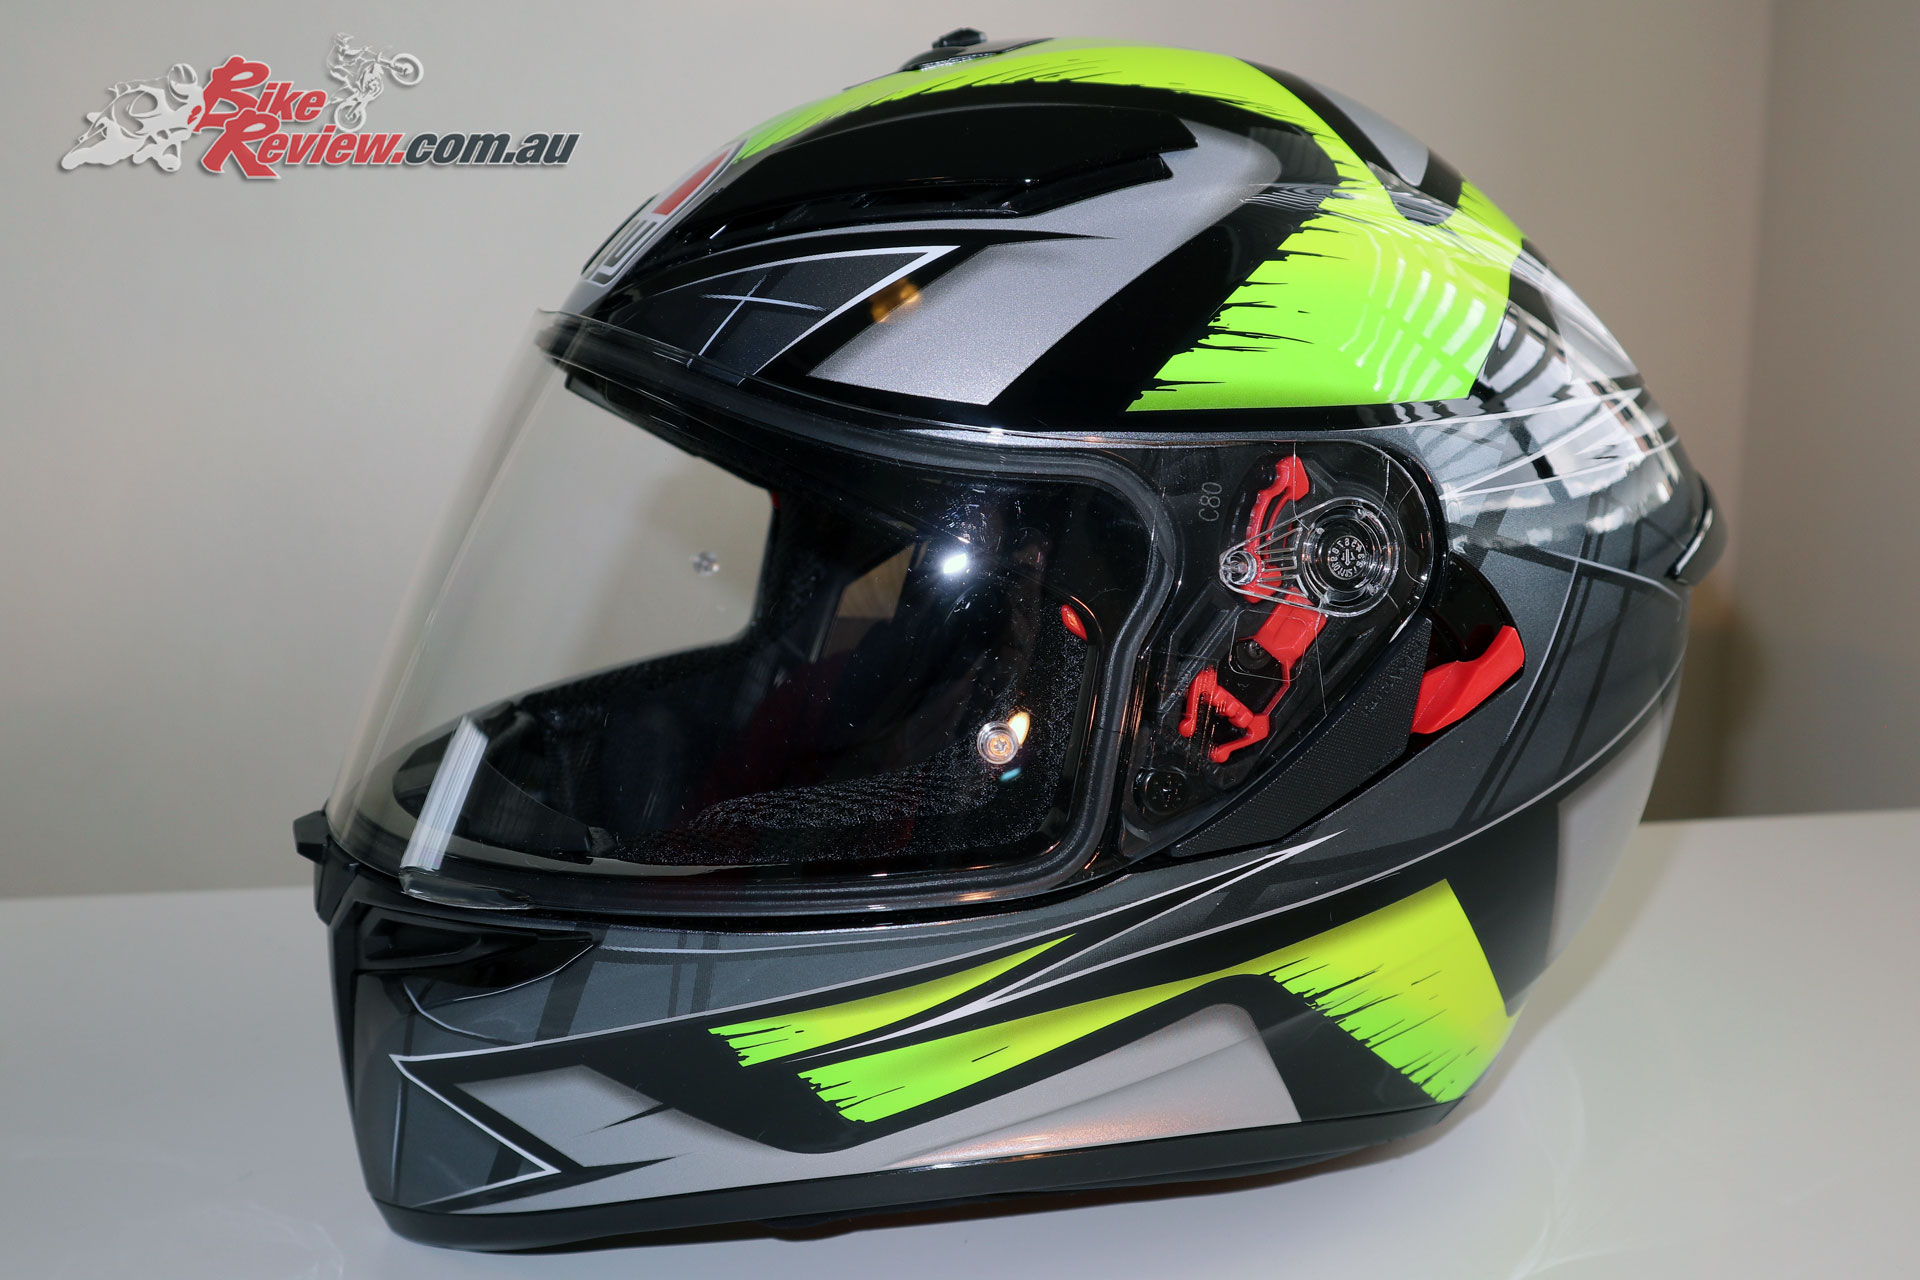 The AGV K-3 SV Helmet in Liquefy